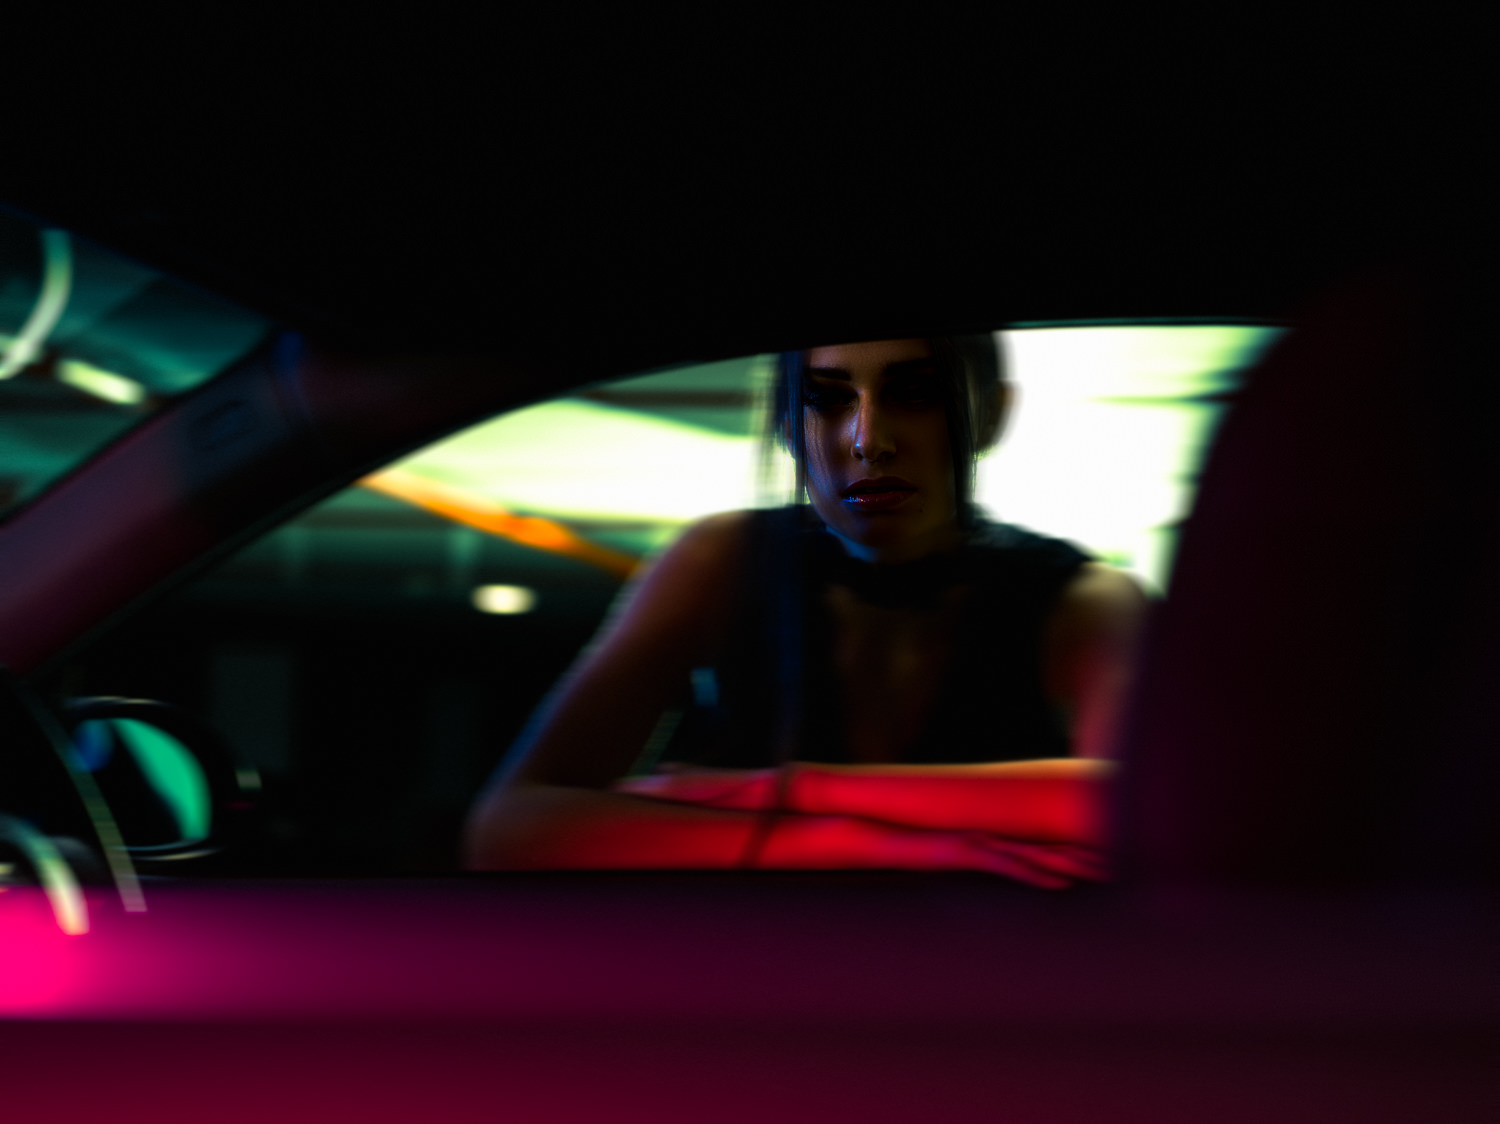 tim gerges - after the night - boss models-12.jpg